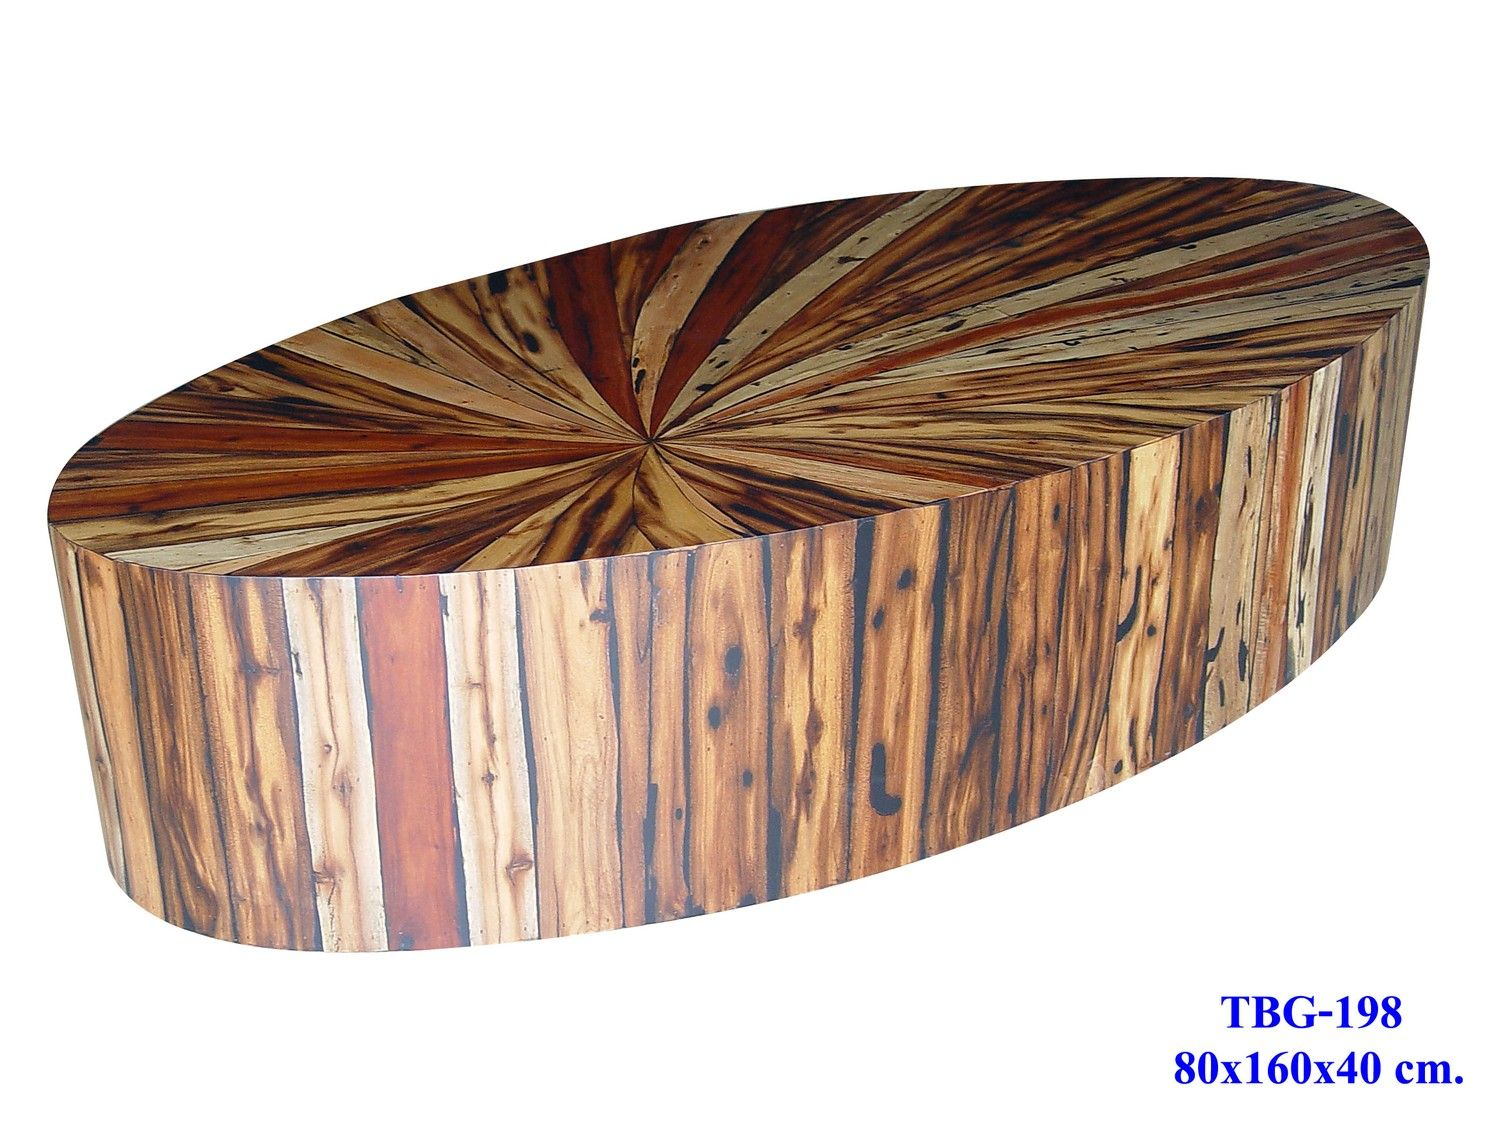 Mixed Wood Coffee Table Custom Sizes & Designs Available ...